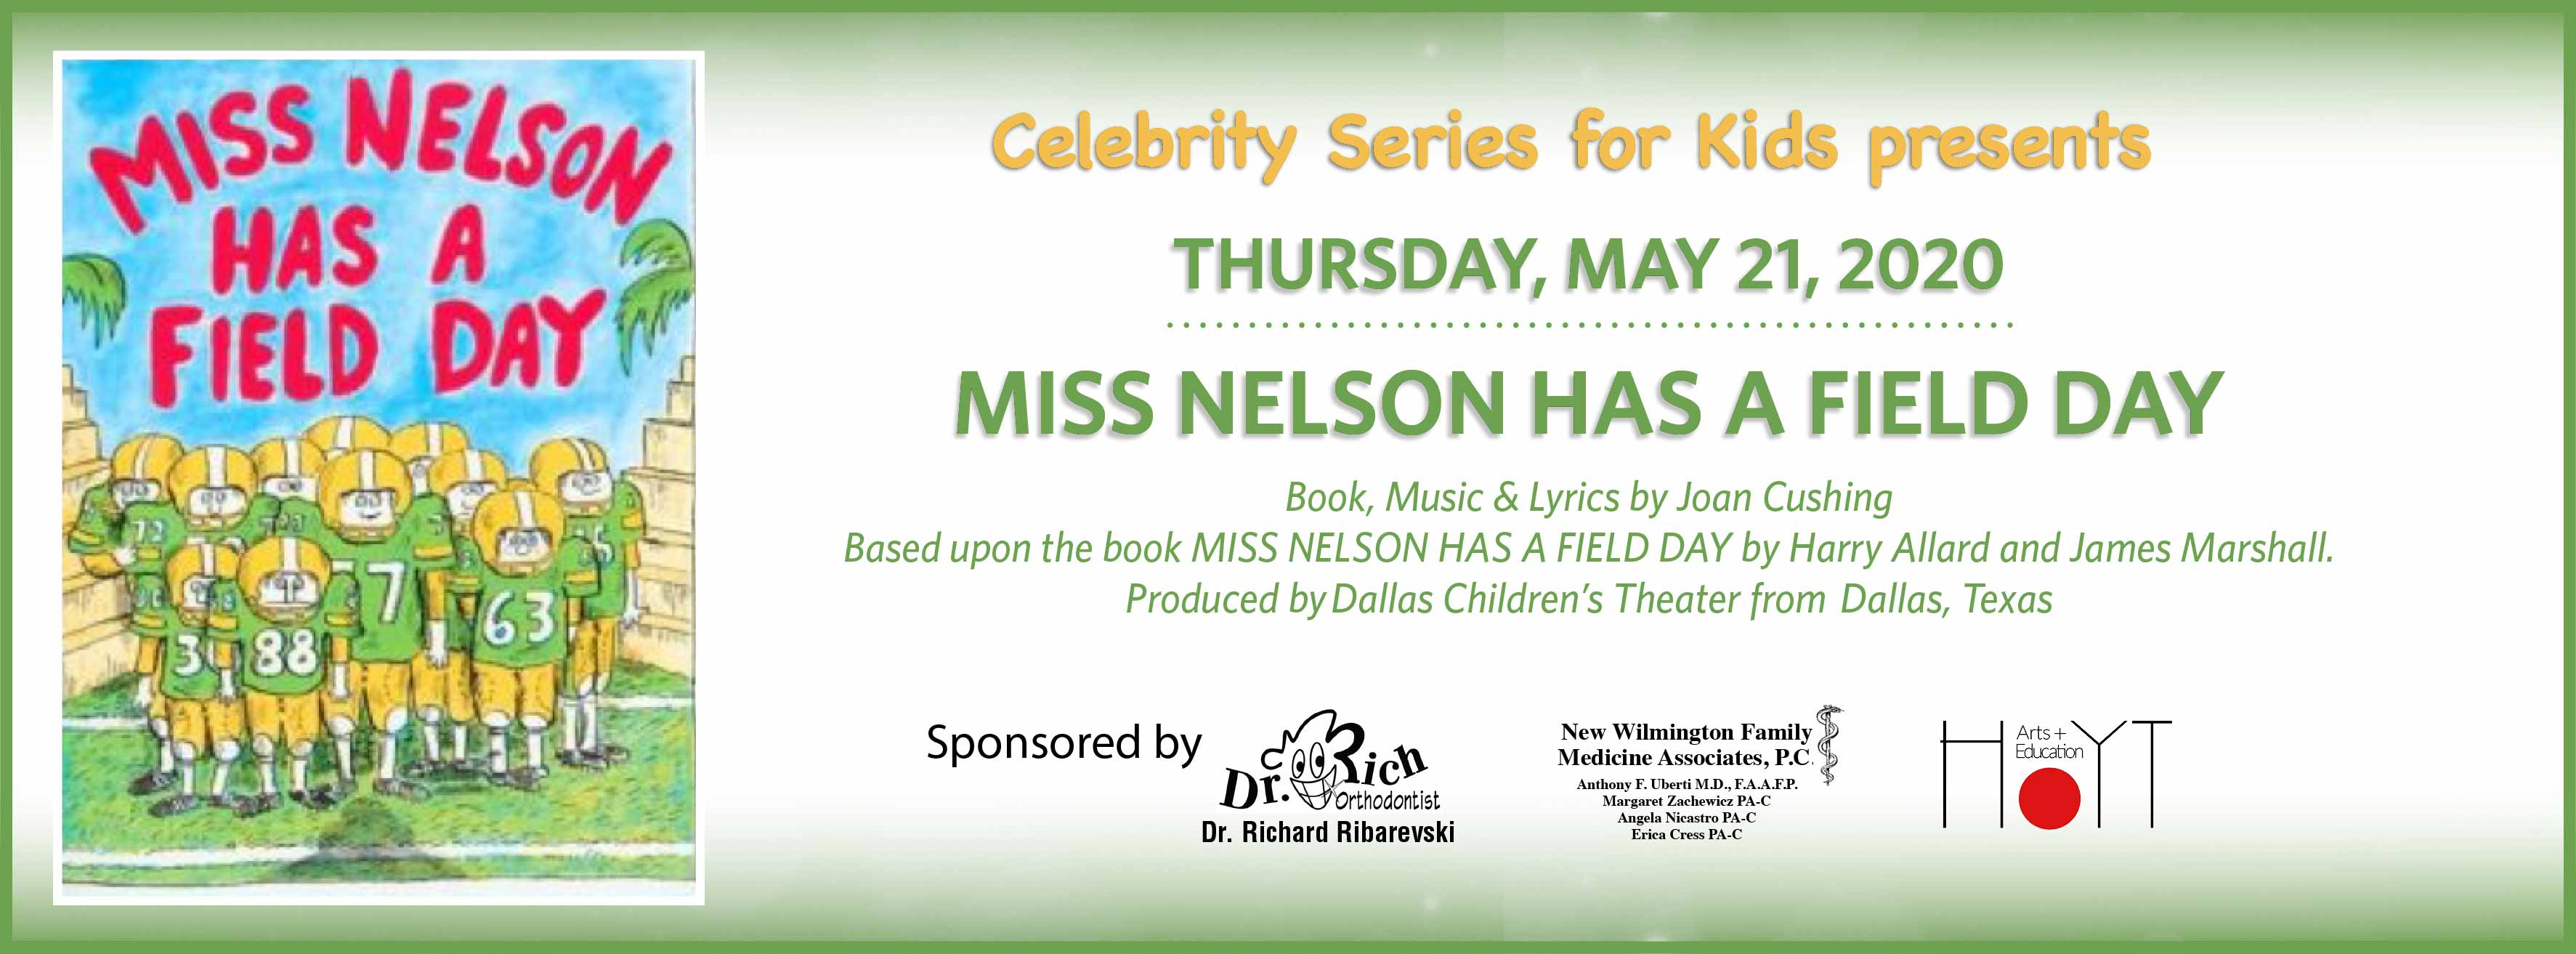 Miss Nelson Has a Field Day: Thursday, May 21, 2020